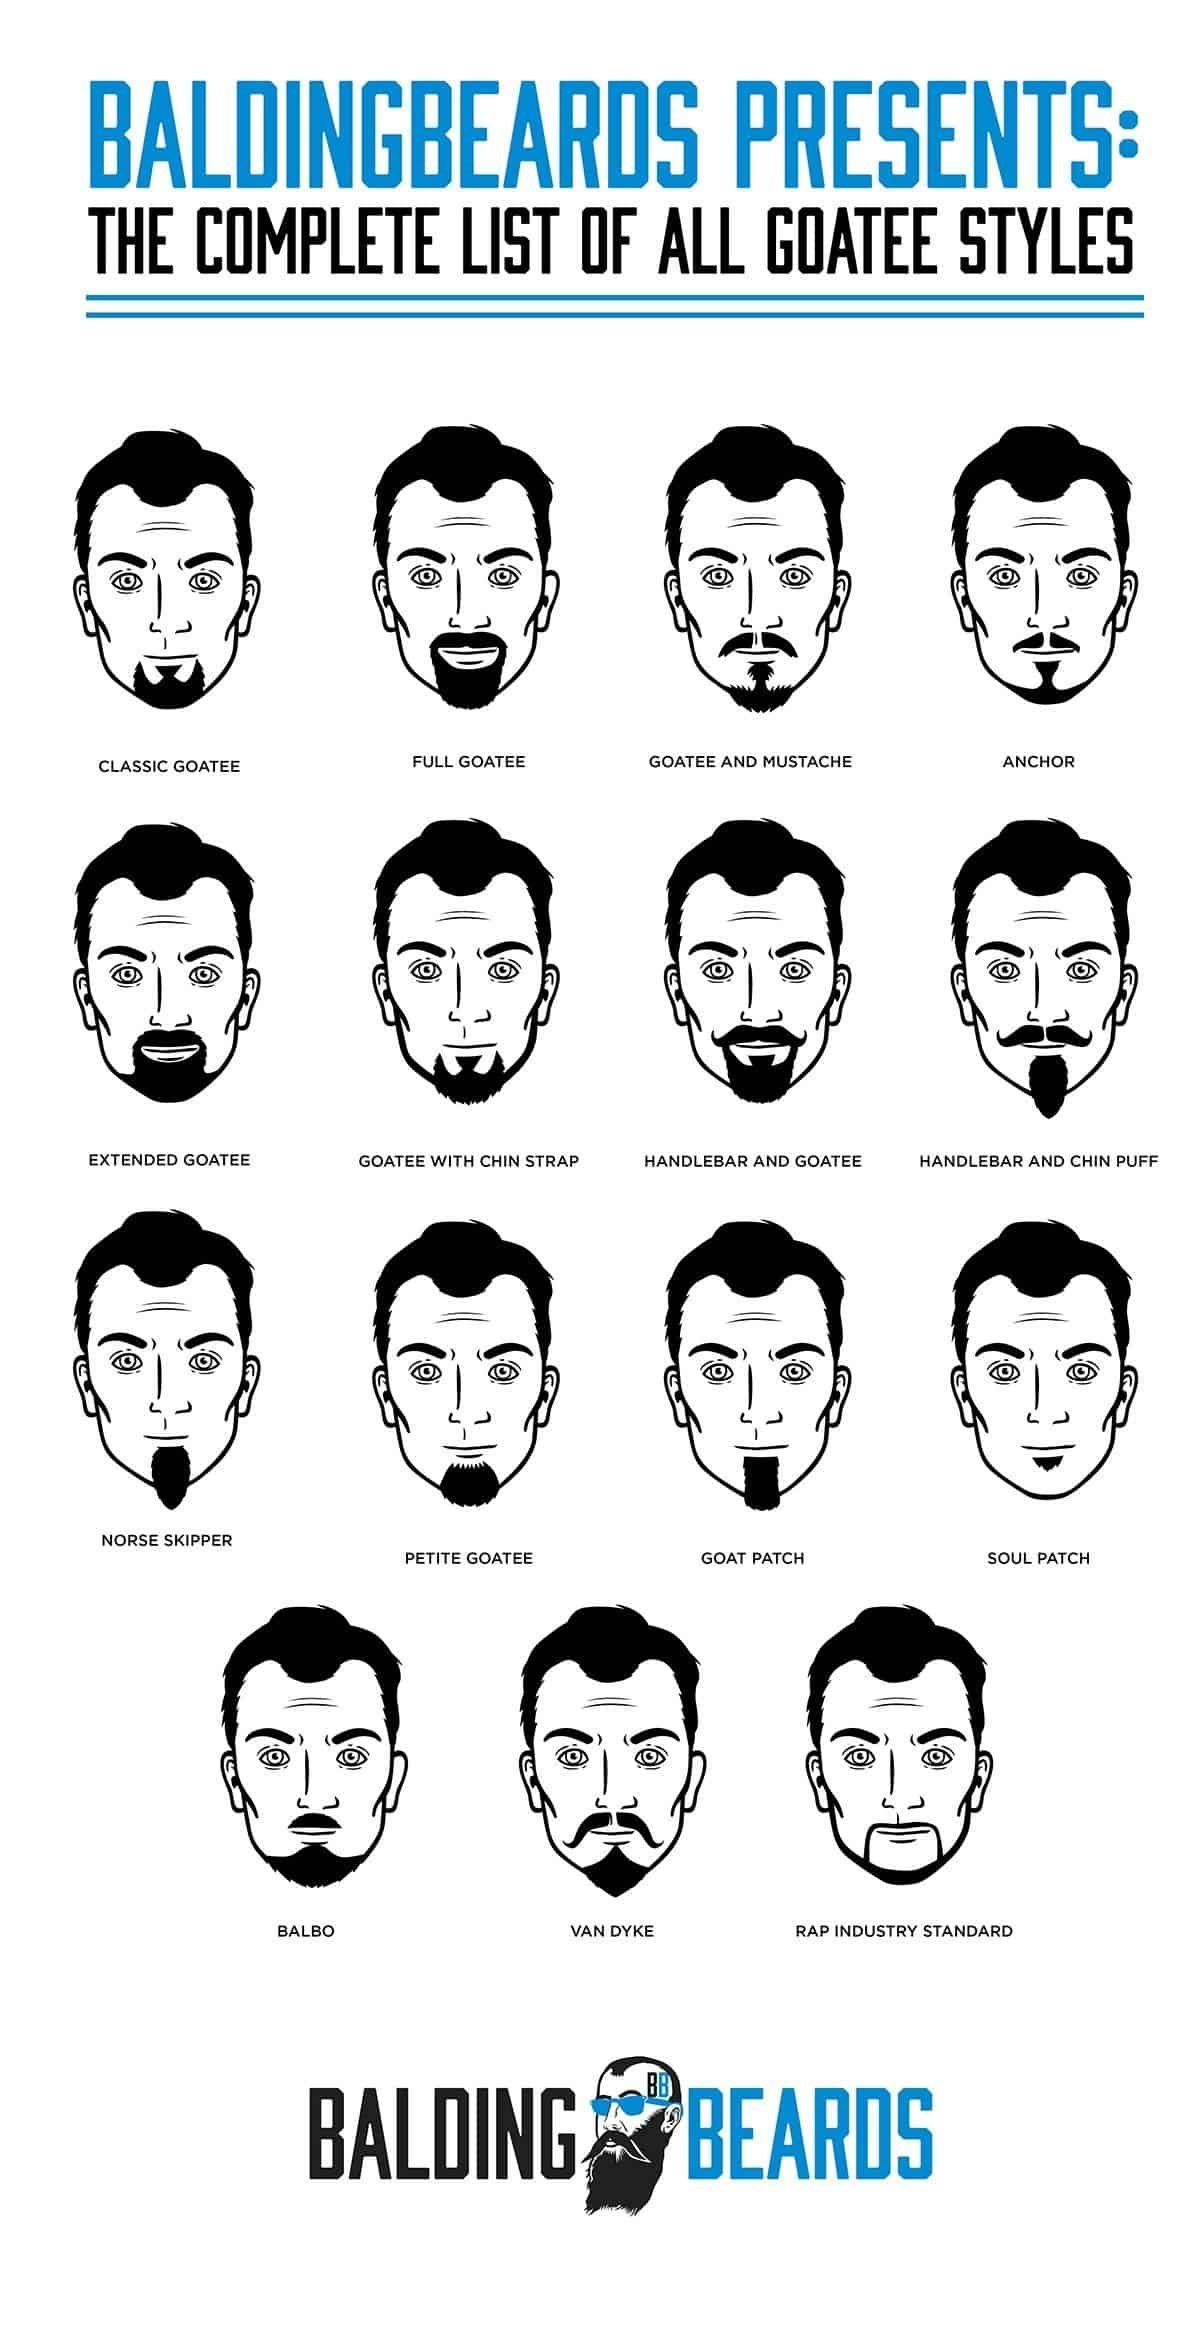 15 Best Goatee Styles For Men You Should Try At Least Once 2021 Goatee Styles Beard Styles For Men Mens Facial Hair Styles